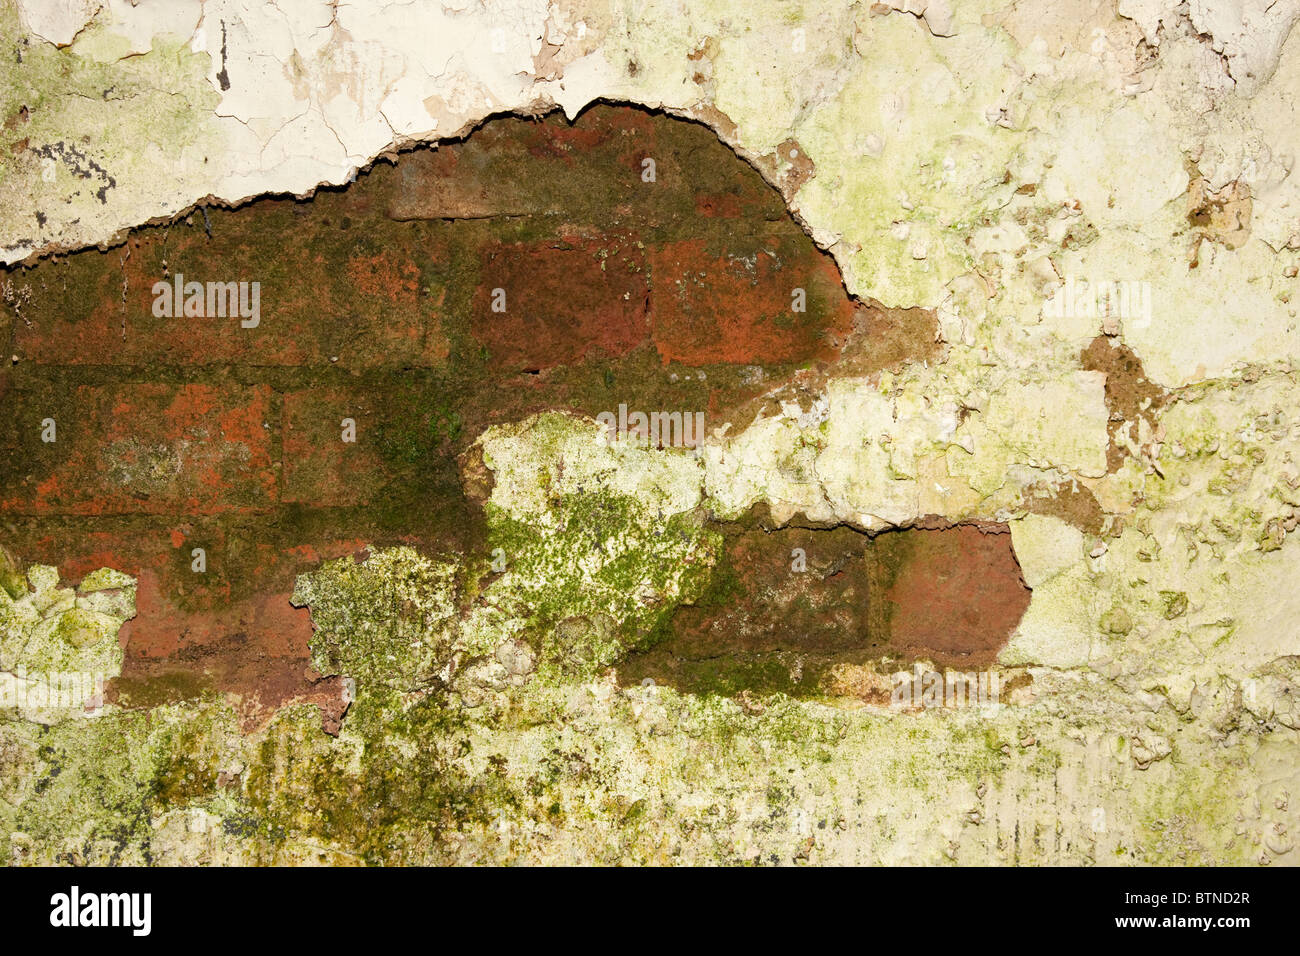 Plaster peeling from damp walls showing algal and fungal growth Cotswolds UK - Stock Image